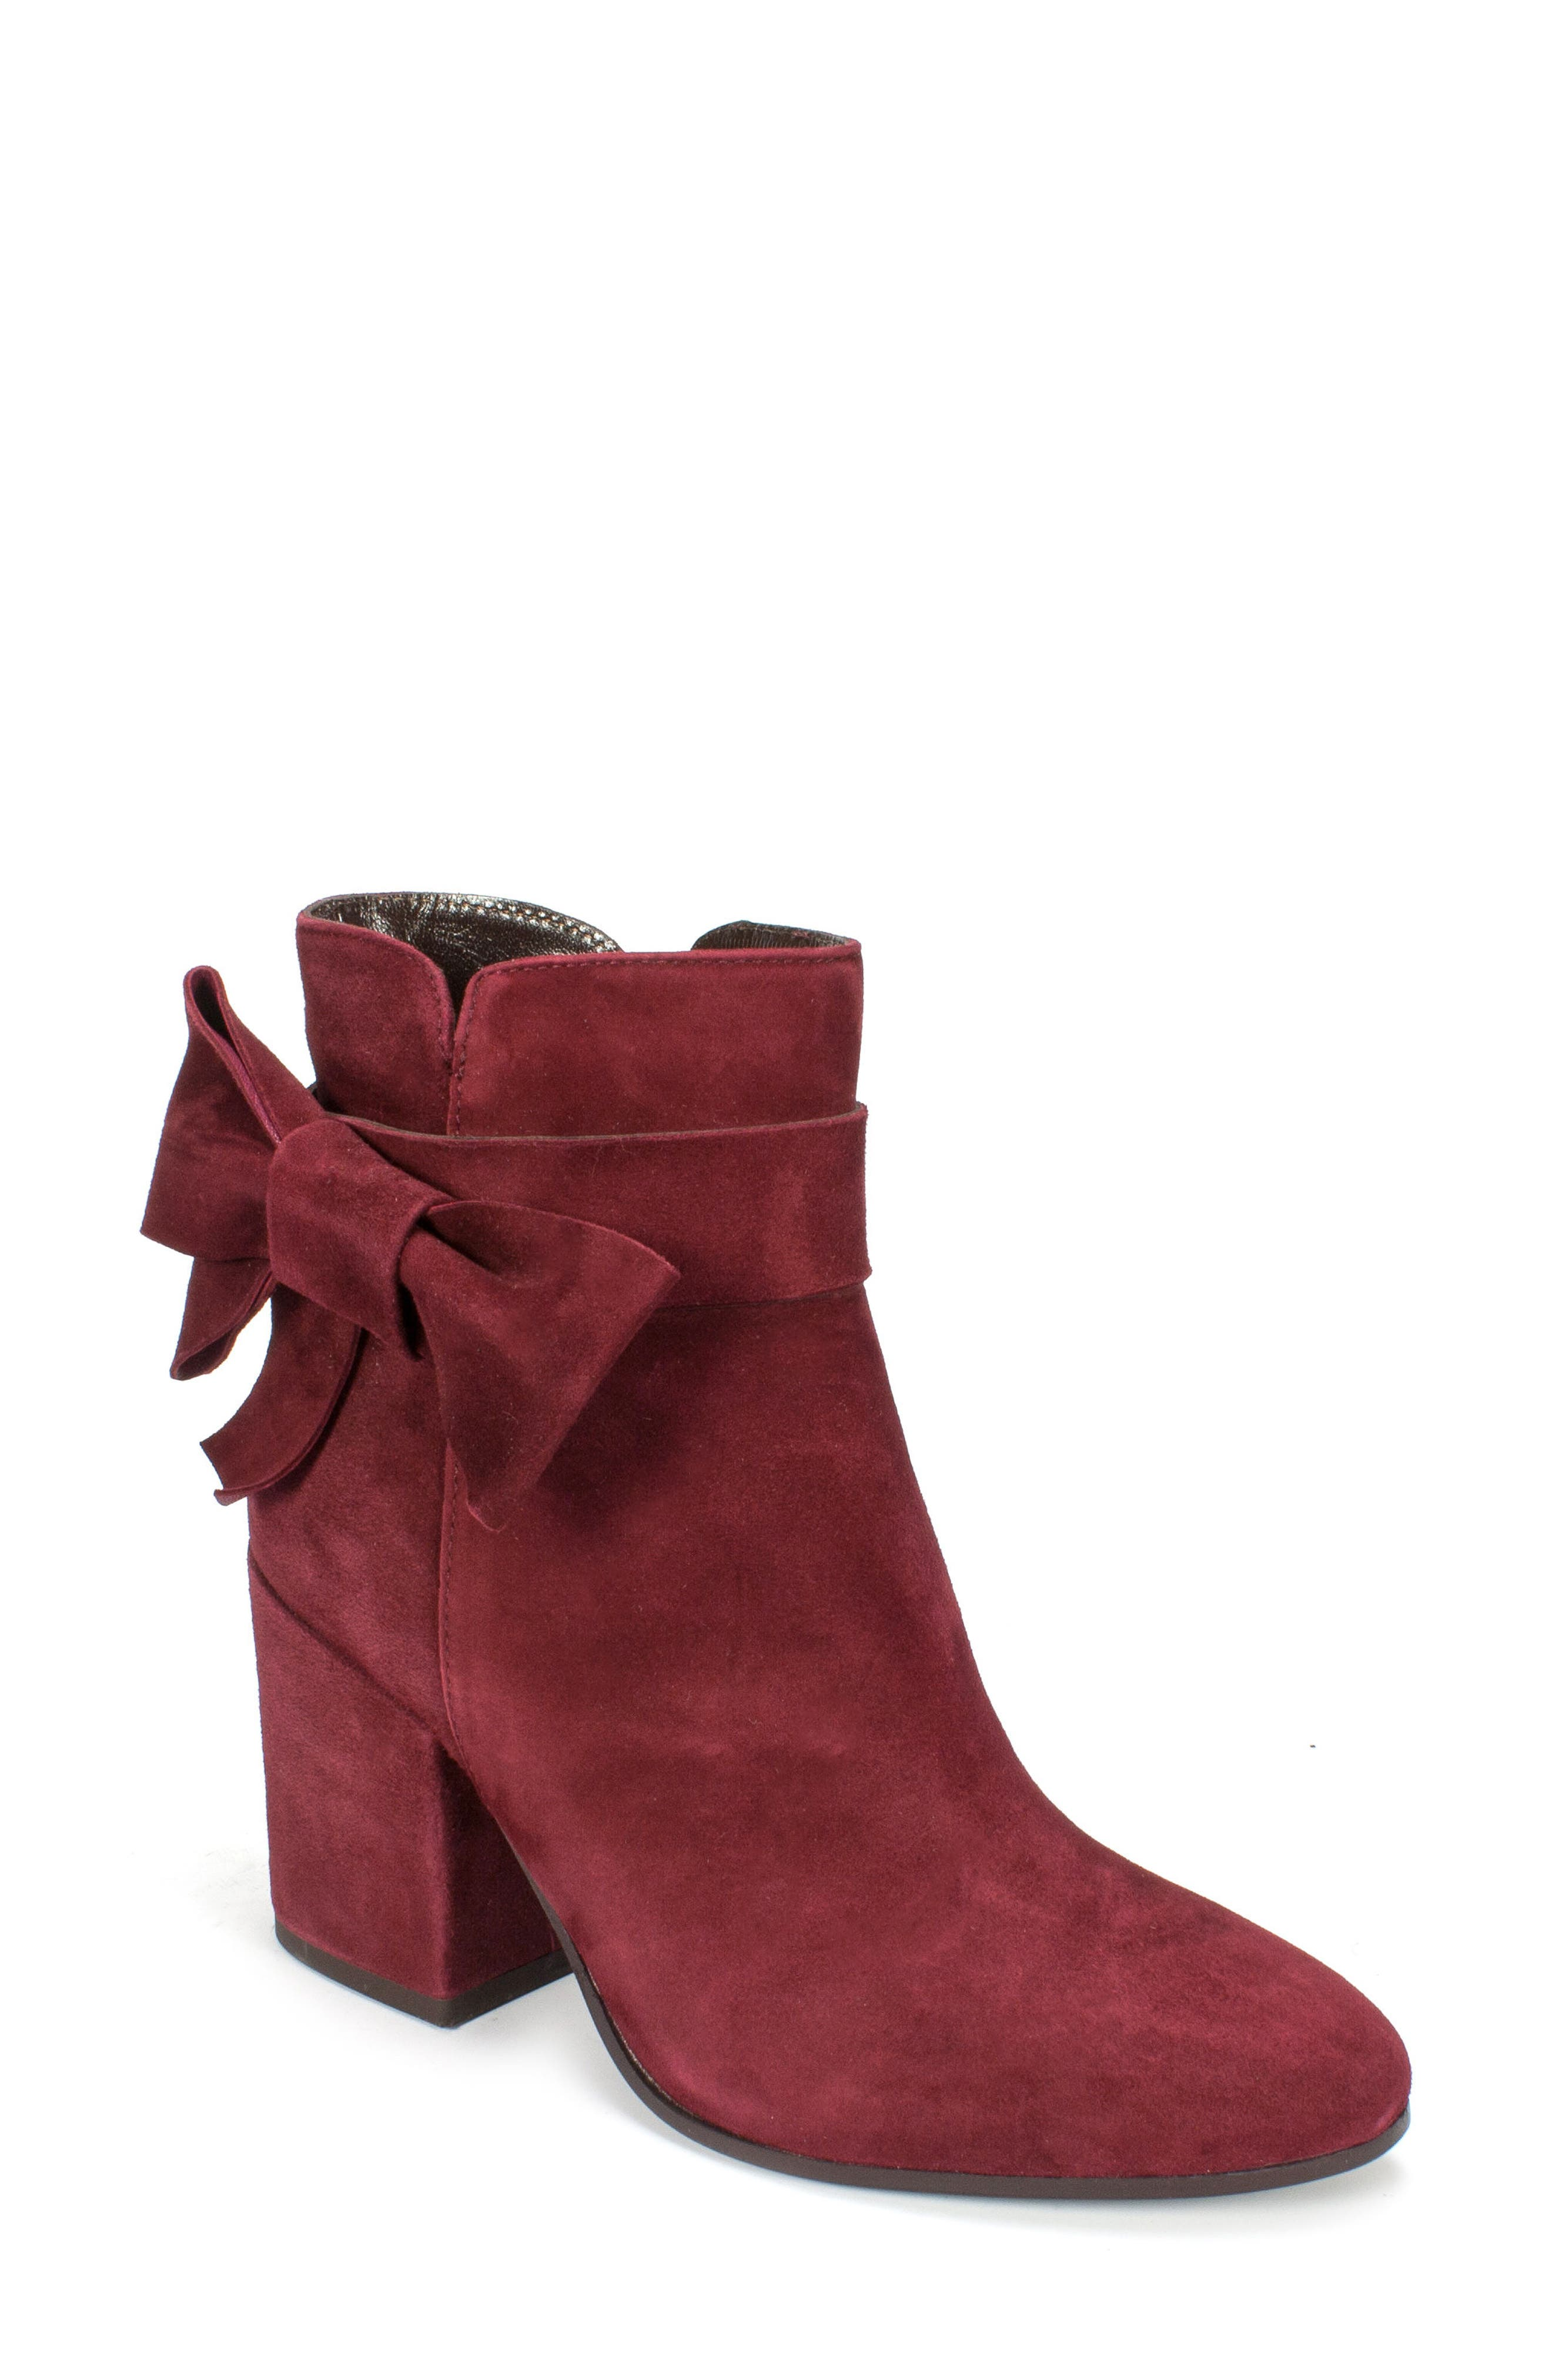 Stevie Bootie,                         Main,                         color, Burgundy Suede